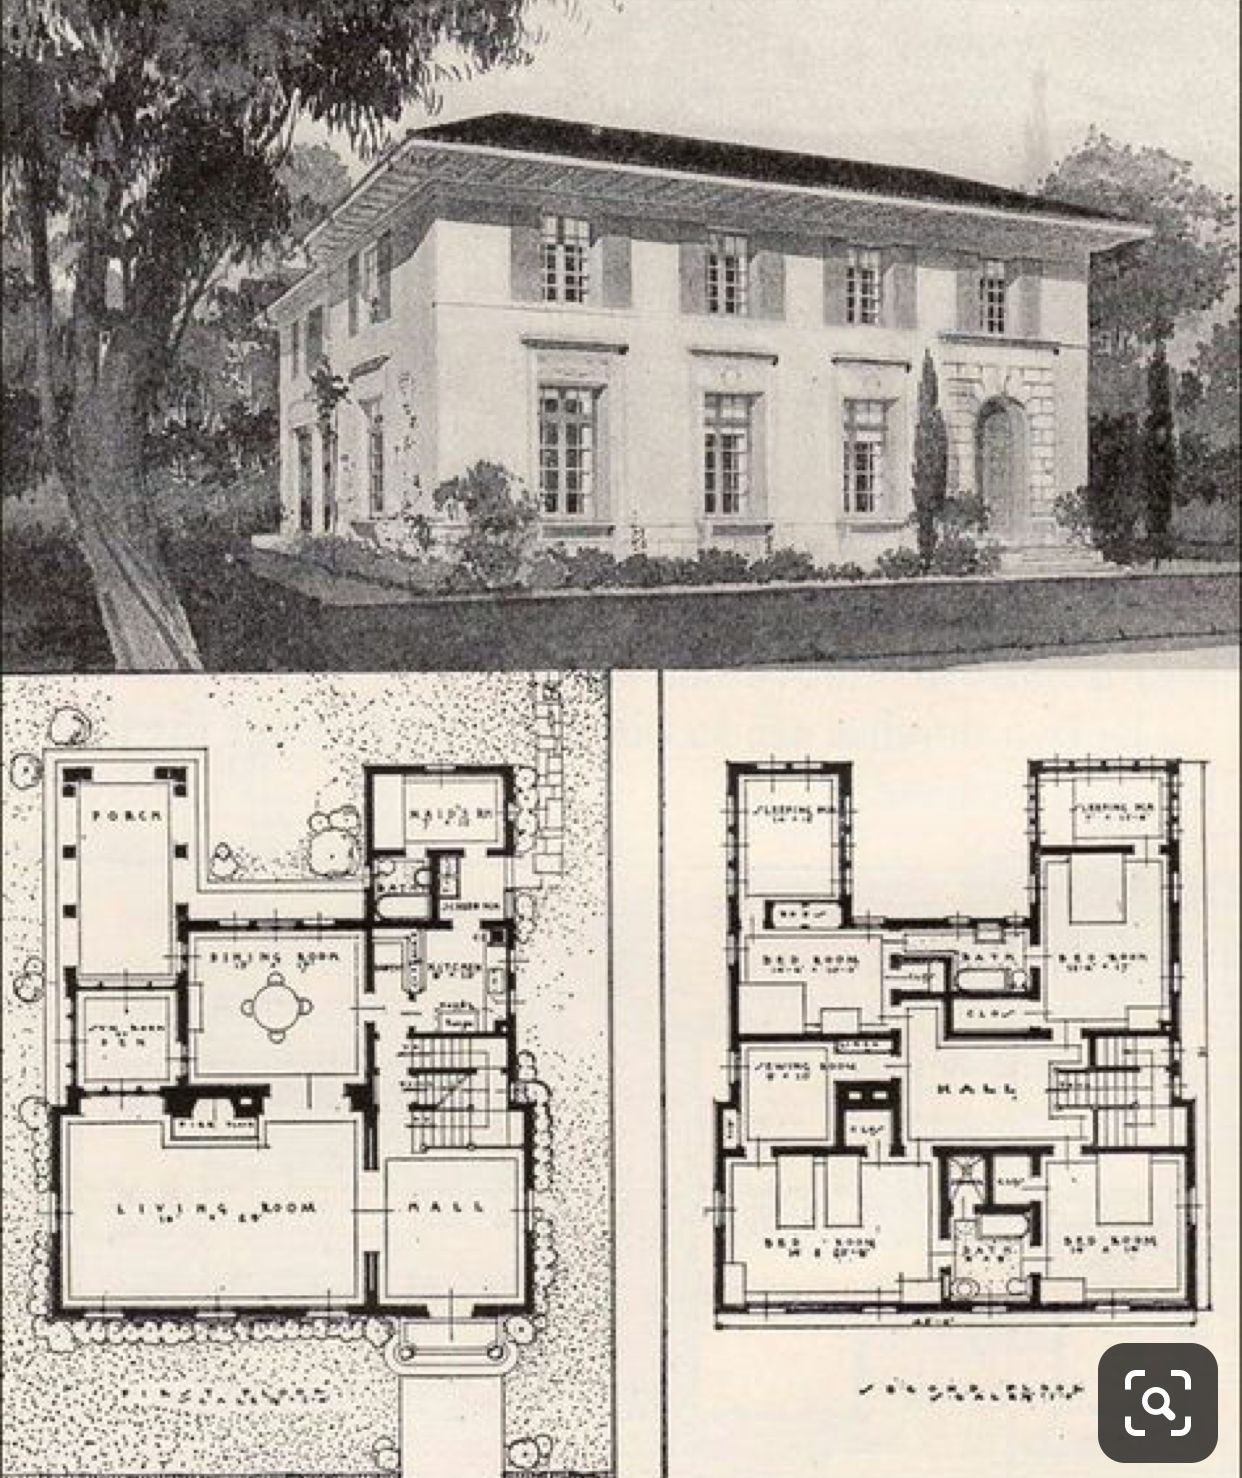 Pin By Shash On Architectural House Plans Vintage House Plans Mediterranean House Plans House Plans